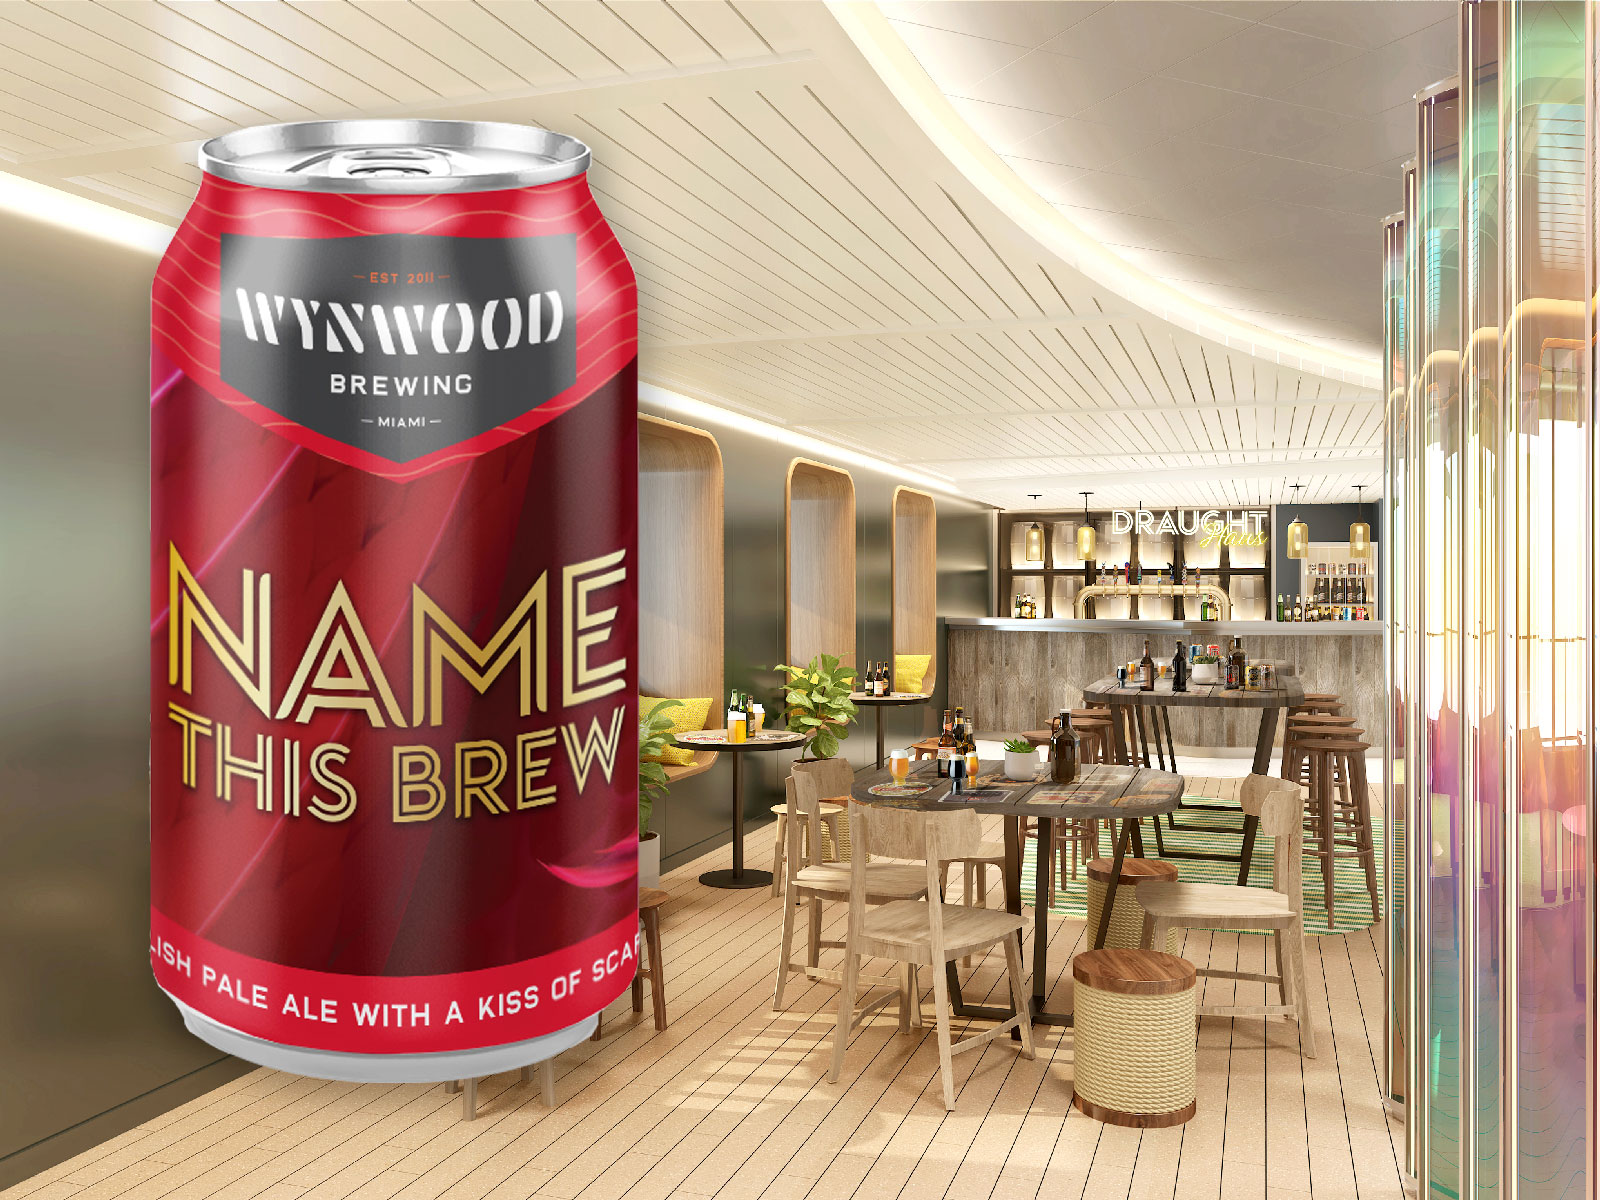 Richard Branson's Virgin Voyages Wants Your Help Naming Its Signature Beer